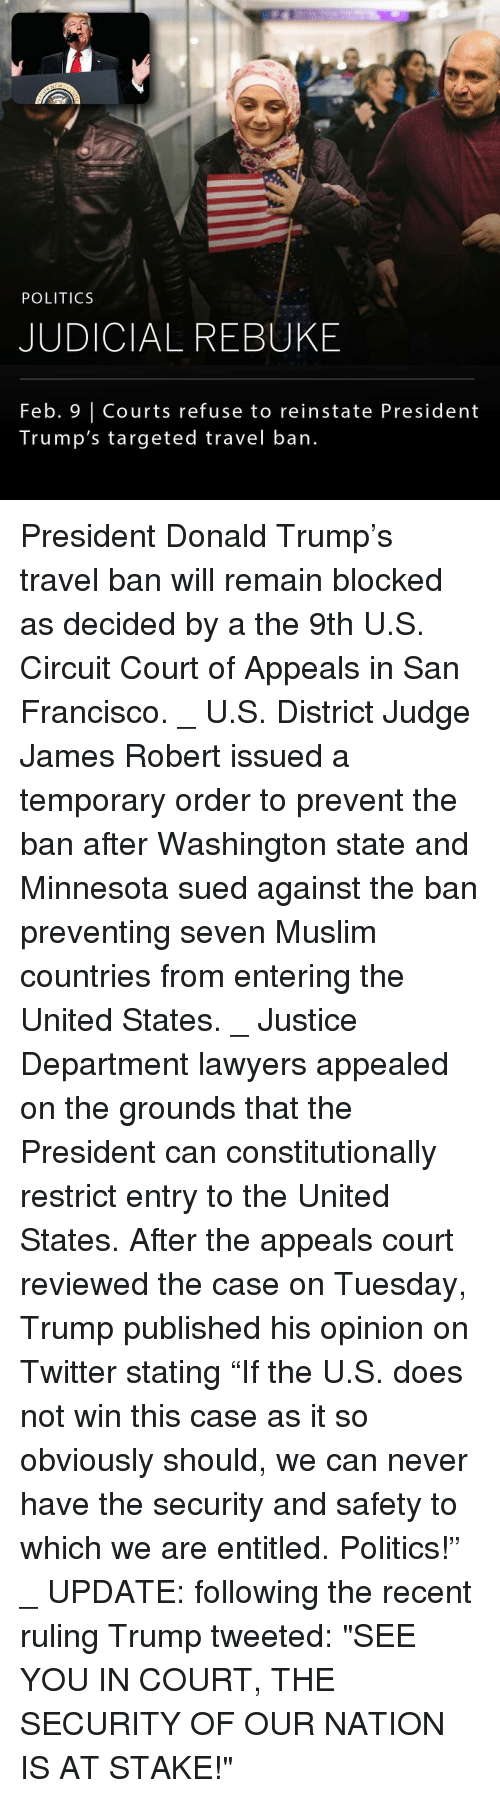 """Memes, San Francisco, and 🤖: POLITICS  JUDICIAL REBUKE  Feb. Courts refuse to reinstate President  Trump's targeted travel ban. President Donald Trump's travel ban will remain blocked as decided by a the 9th U.S. Circuit Court of Appeals in San Francisco. _ U.S. District Judge James Robert issued a temporary order to prevent the ban after Washington state and Minnesota sued against the ban preventing seven Muslim countries from entering the United States. _ Justice Department lawyers appealed on the grounds that the President can constitutionally restrict entry to the United States. After the appeals court reviewed the case on Tuesday, Trump published his opinion on Twitter stating """"If the U.S. does not win this case as it so obviously should, we can never have the security and safety to which we are entitled. Politics!"""" _ UPDATE: following the recent ruling Trump tweeted: """"SEE YOU IN COURT, THE SECURITY OF OUR NATION IS AT STAKE!"""""""